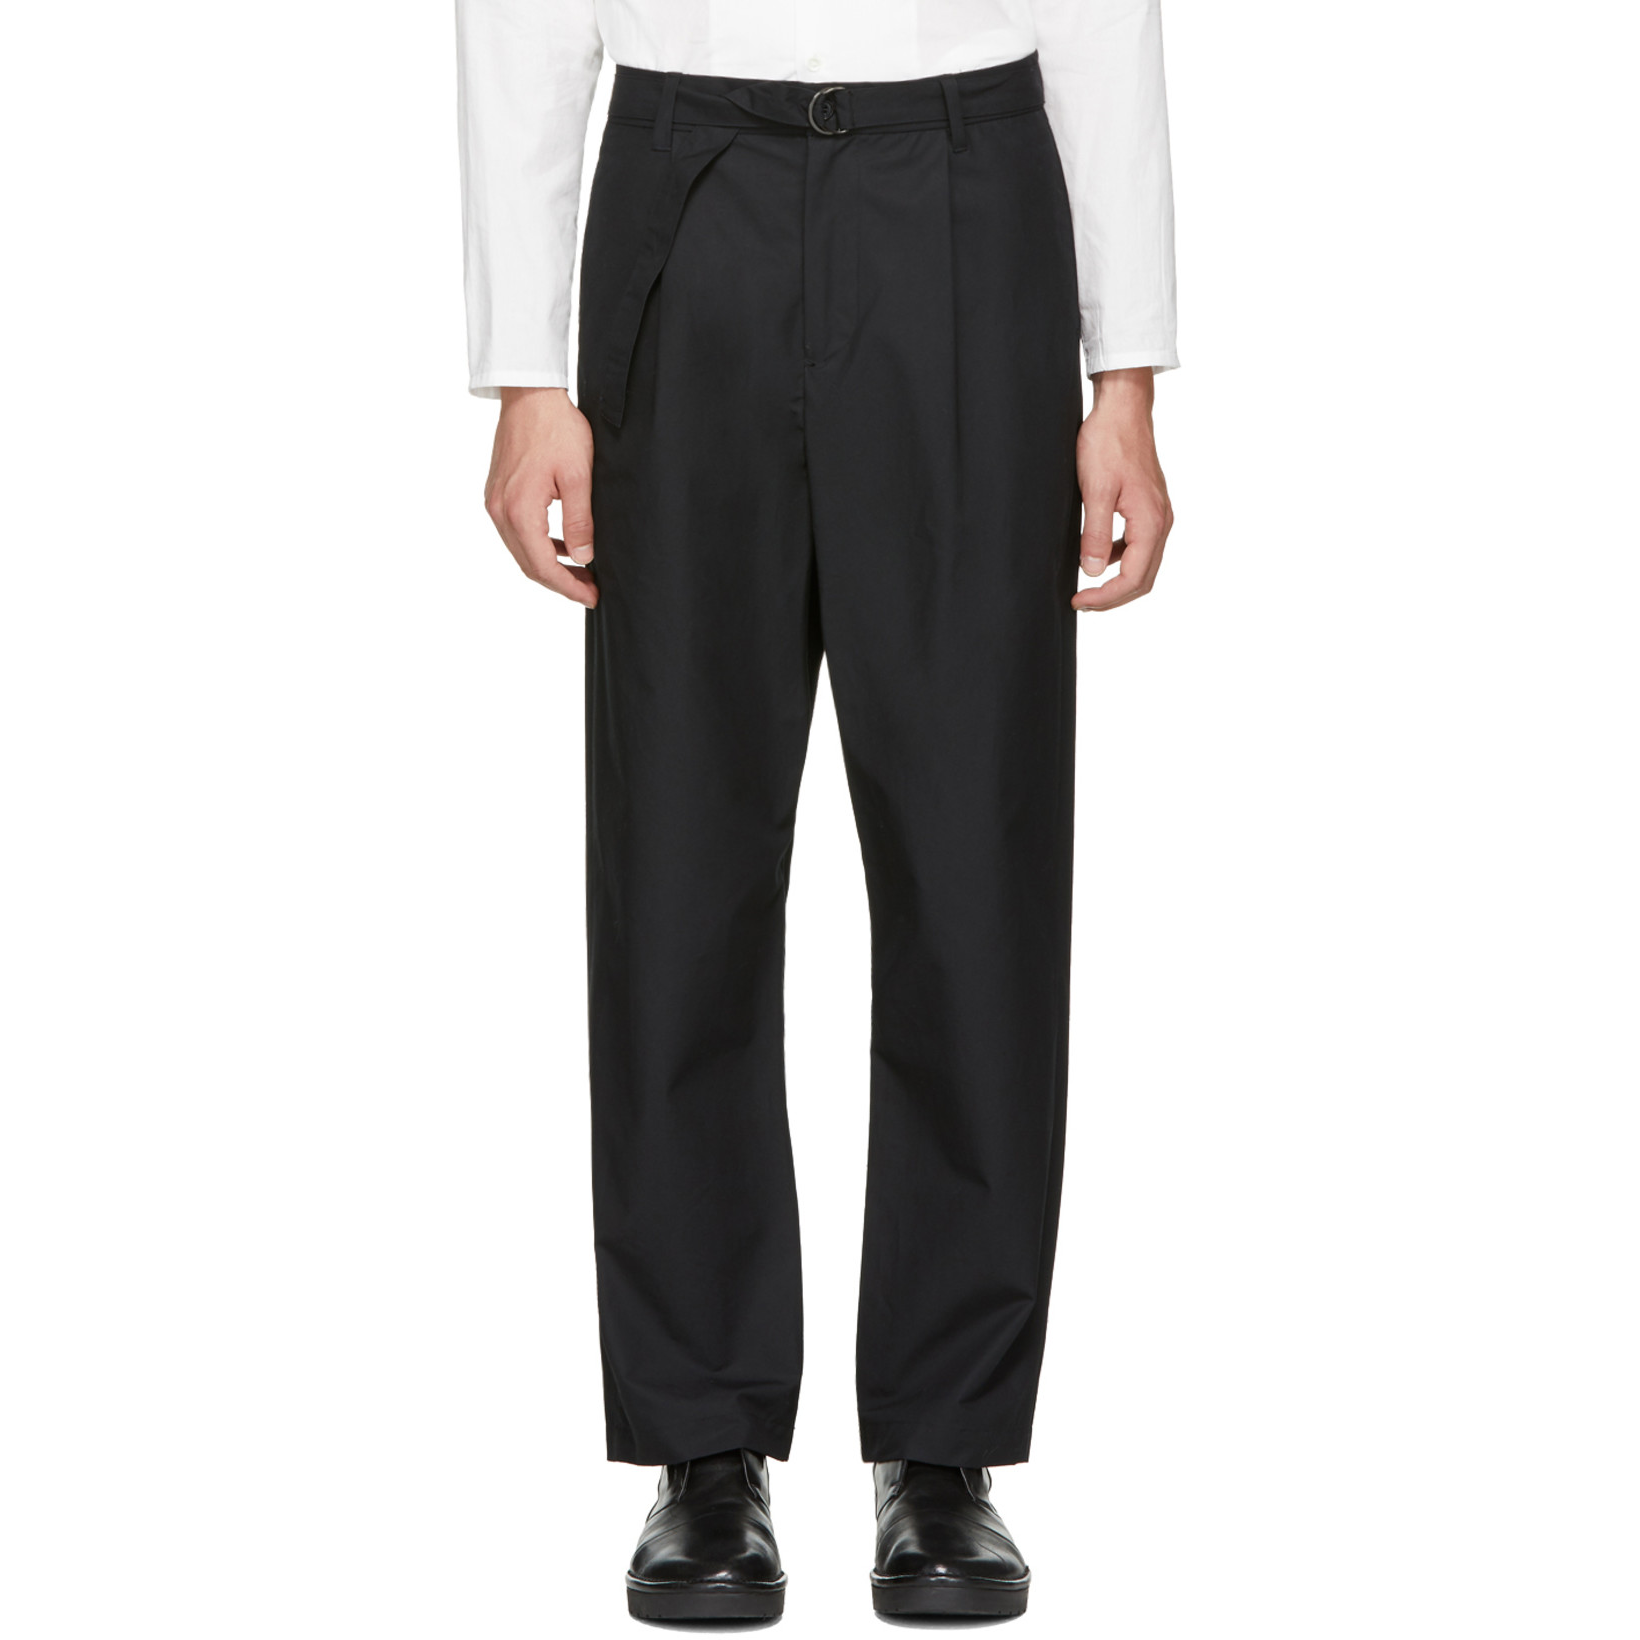 Undecorated man trousers @ssense - Hominems